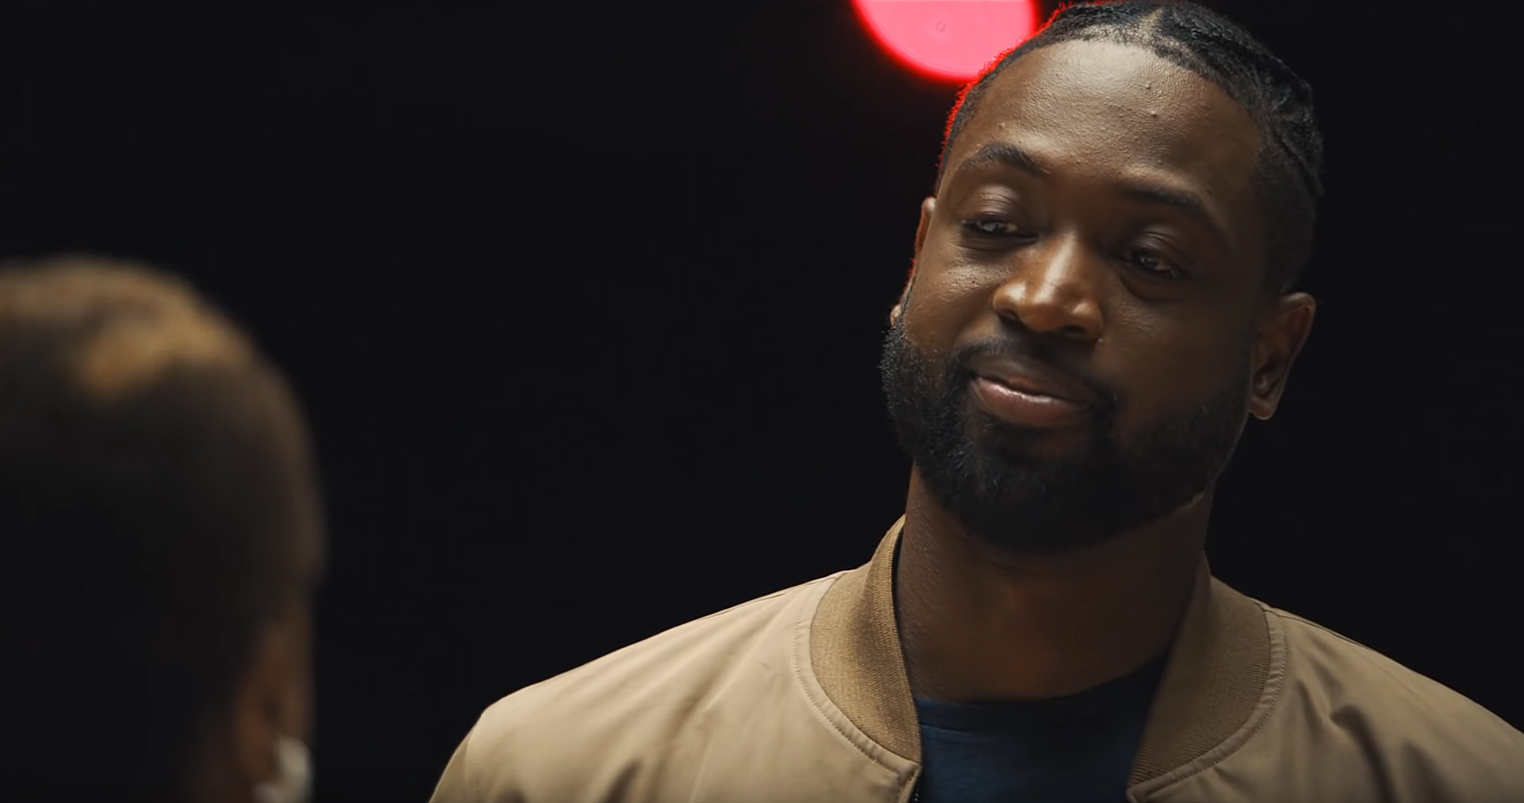 Dwyane Wade Scores Big for Budweiser, Driving Positive Social Media Conversations